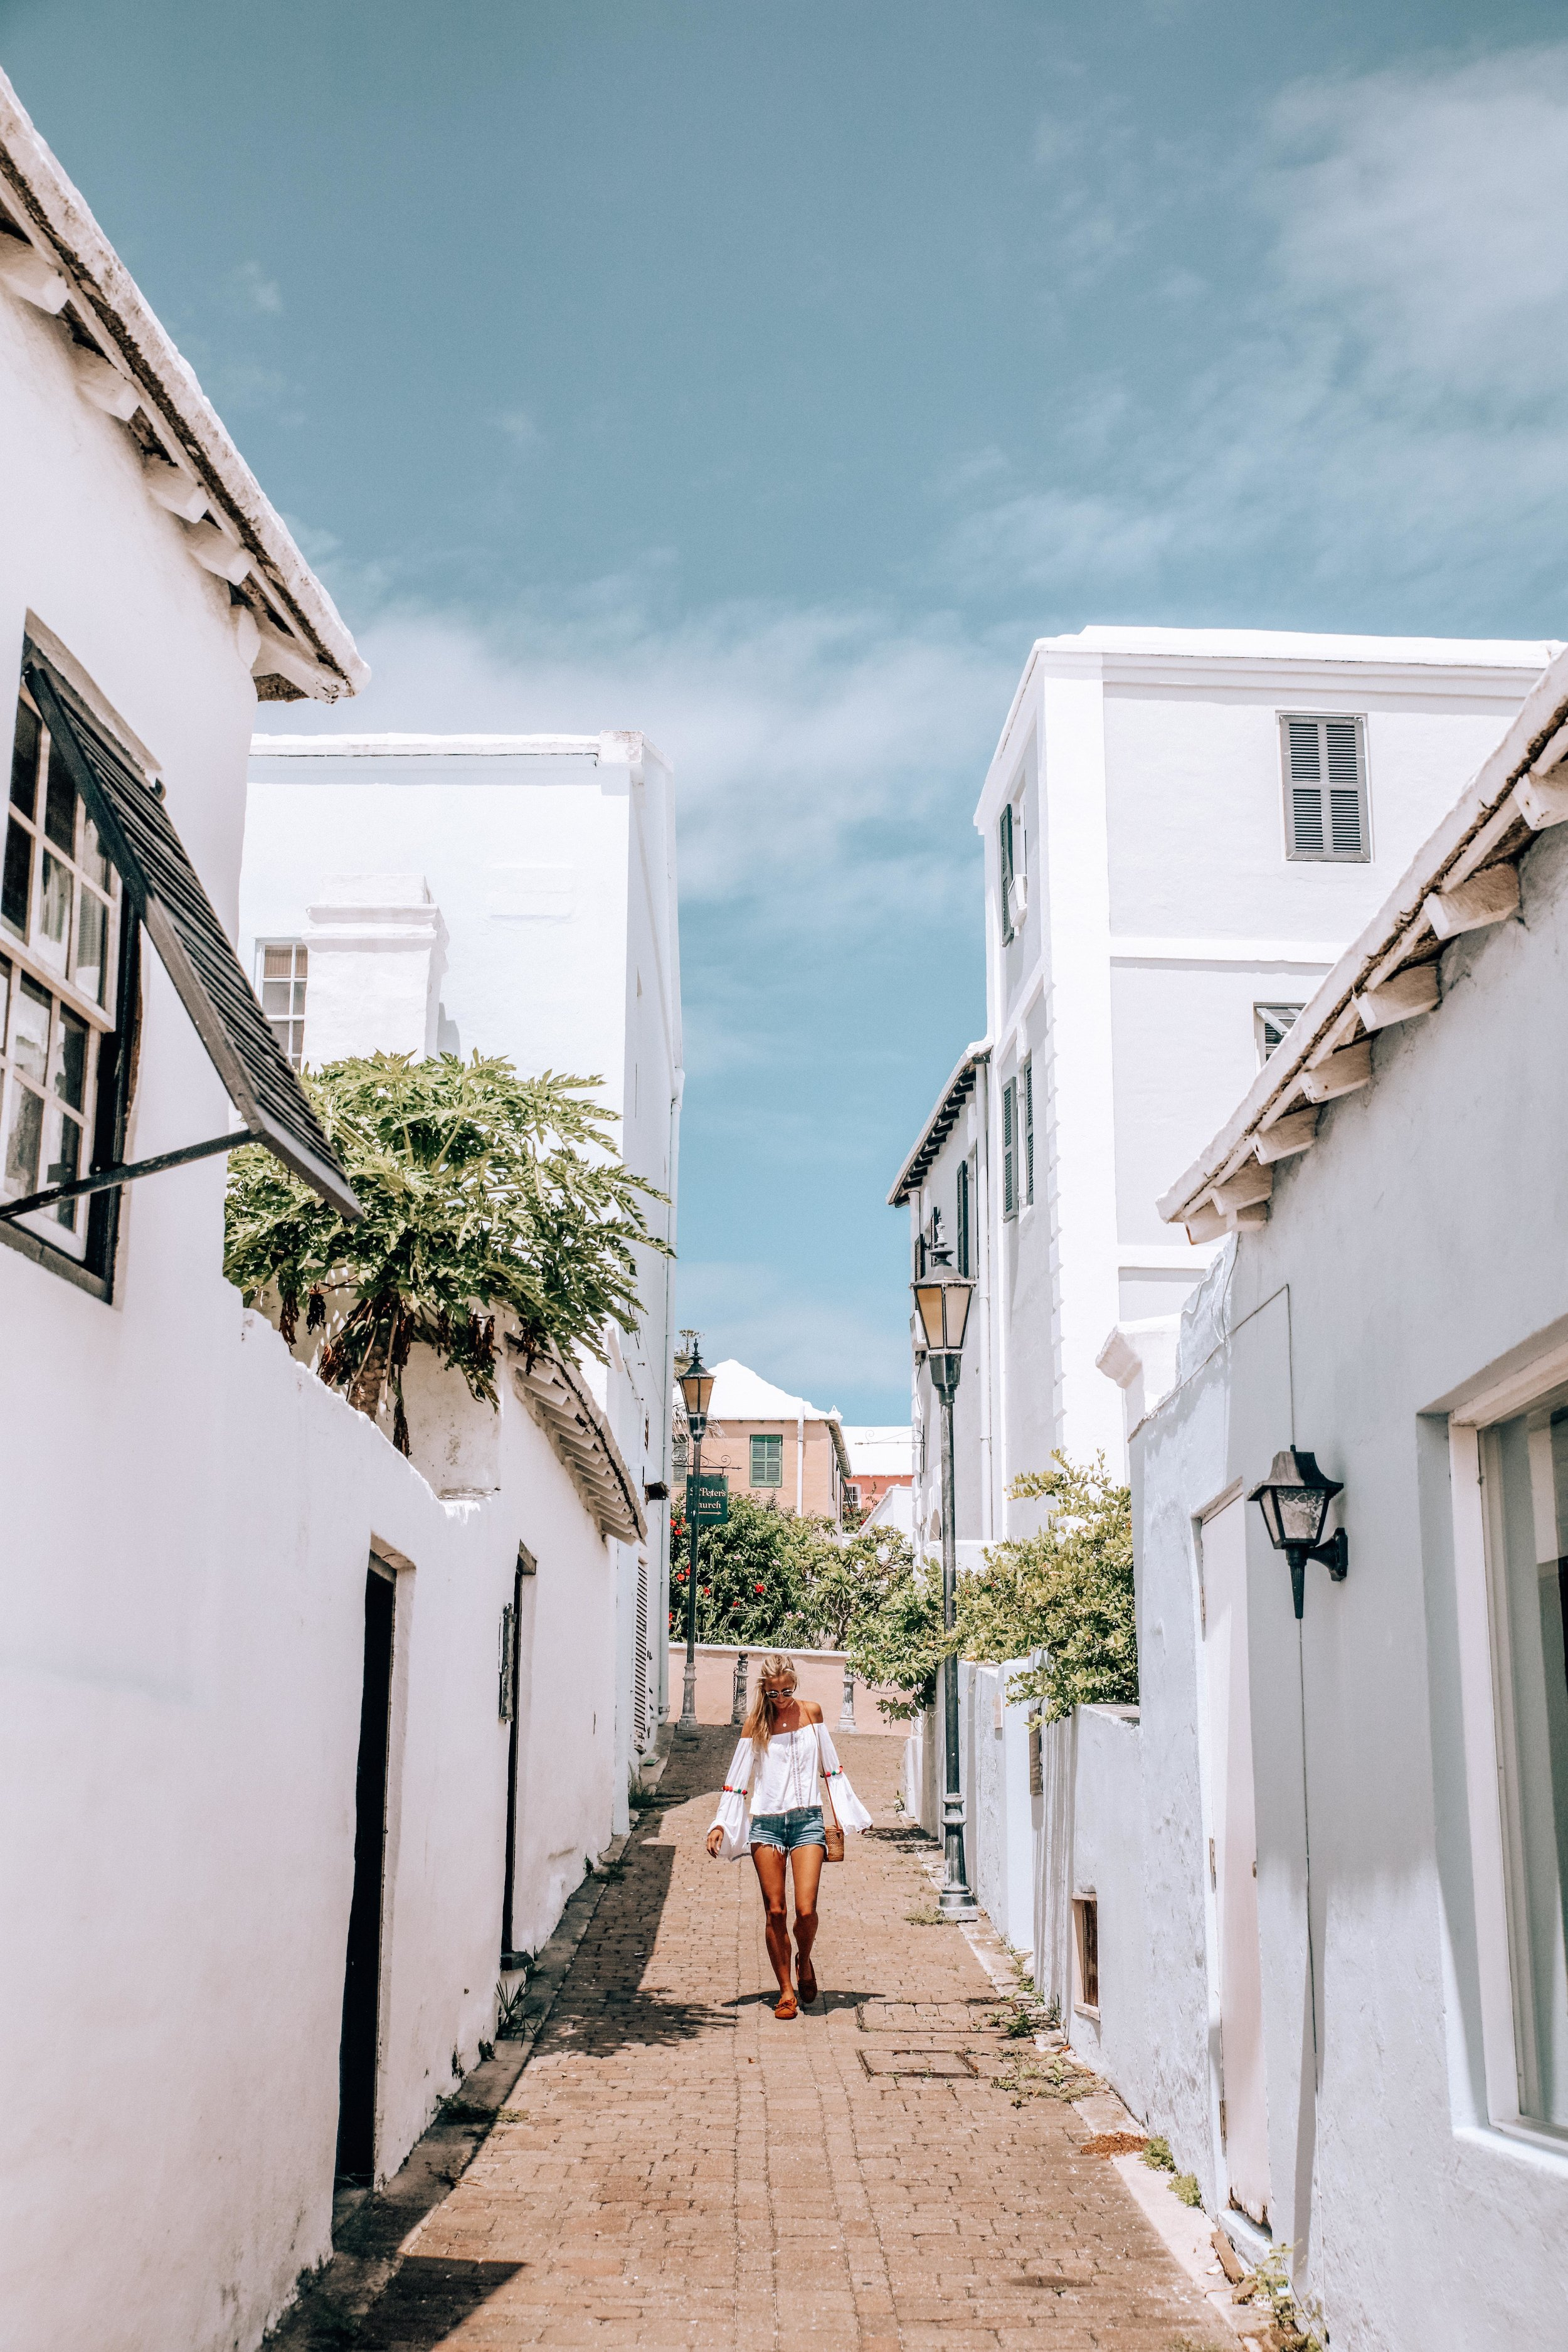 Instagram heaven! - My favourite alley in St. George's, make sure you keep an eye out for it!